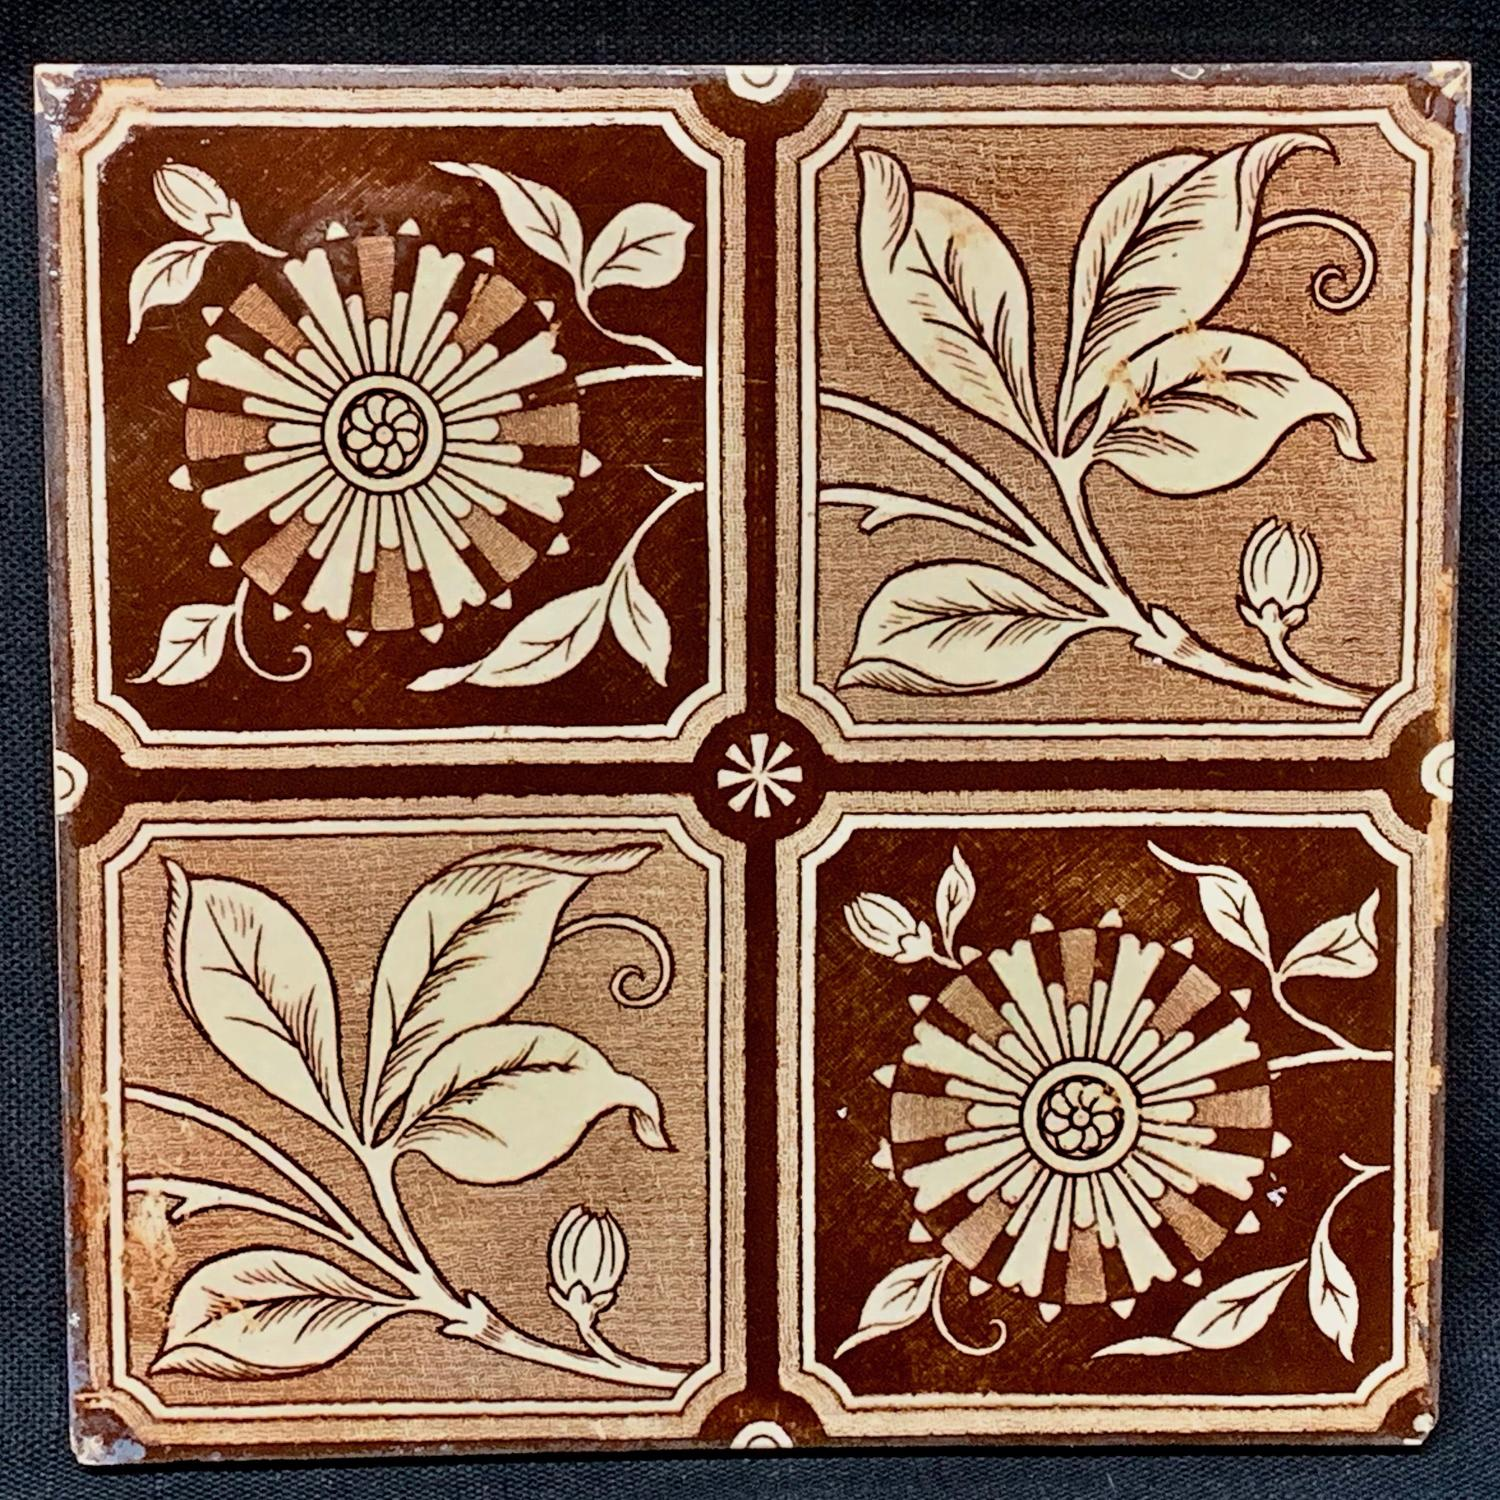 Brown Transferware Tile ~ 4 panel Flowers & Vines 1885